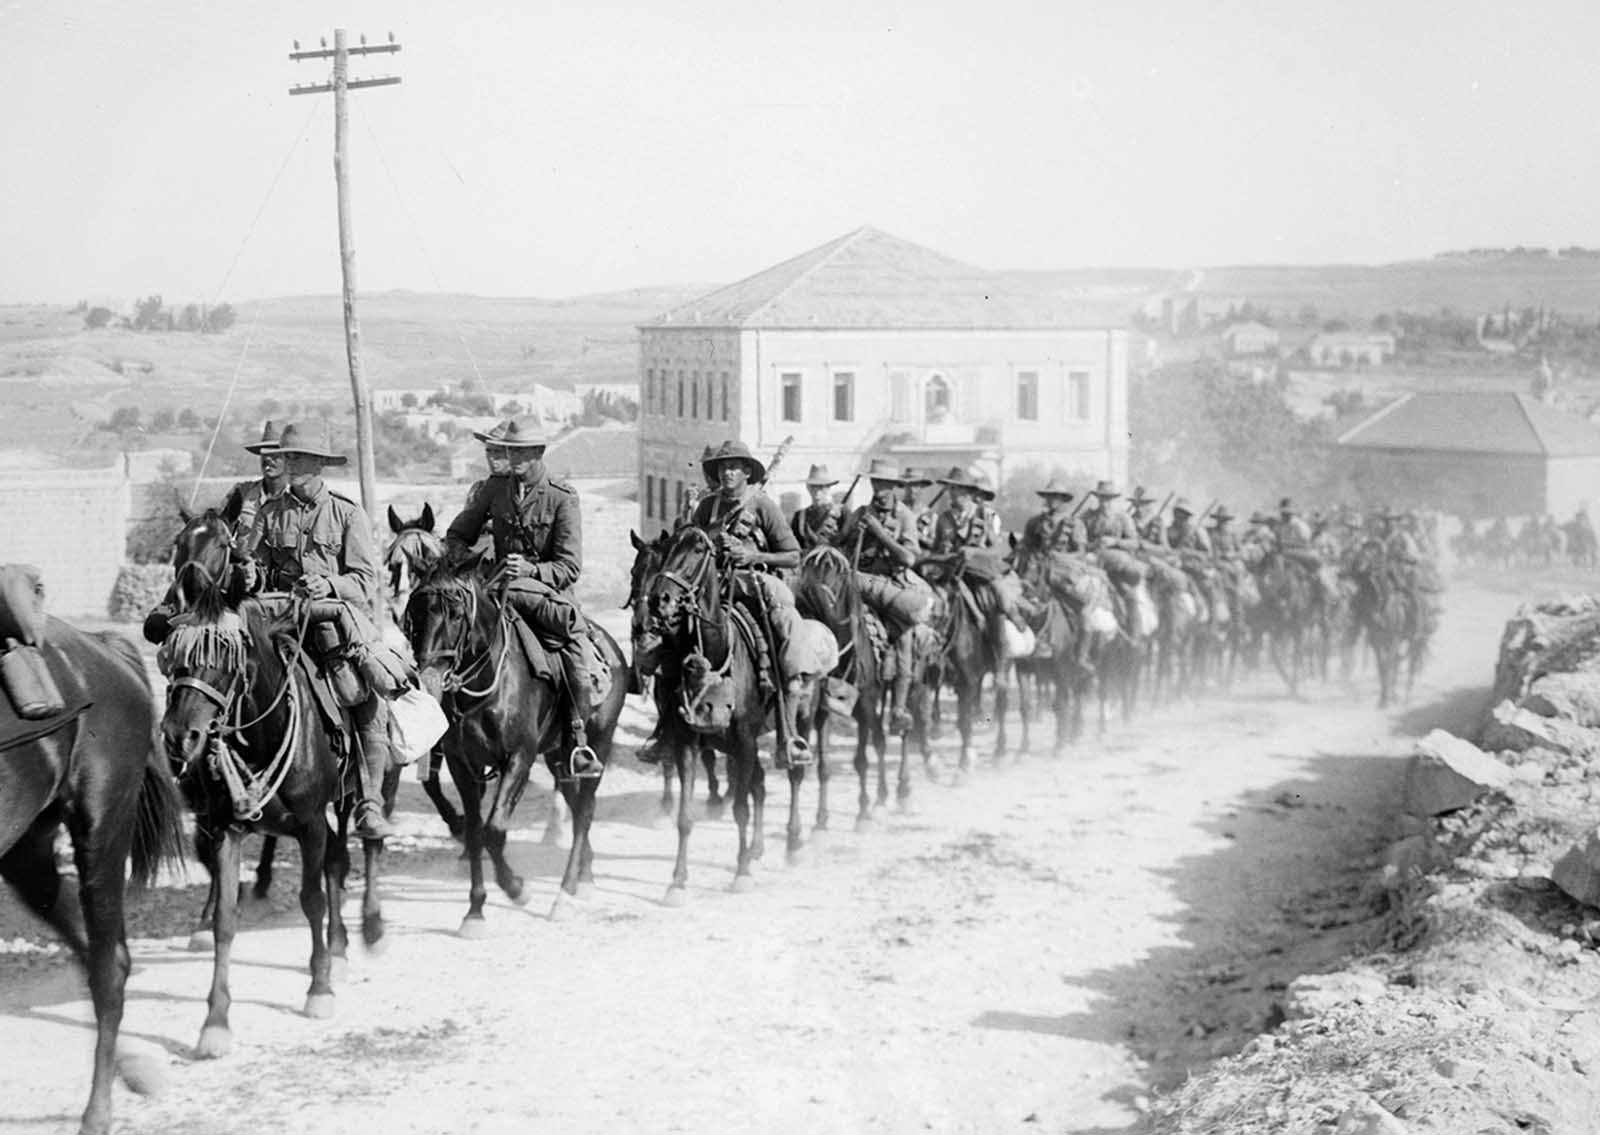 6th Australian light-horse regiment, marching in Sheikh Jarrah, on the way to Mount Scopus, Jerusalem, in 1918.